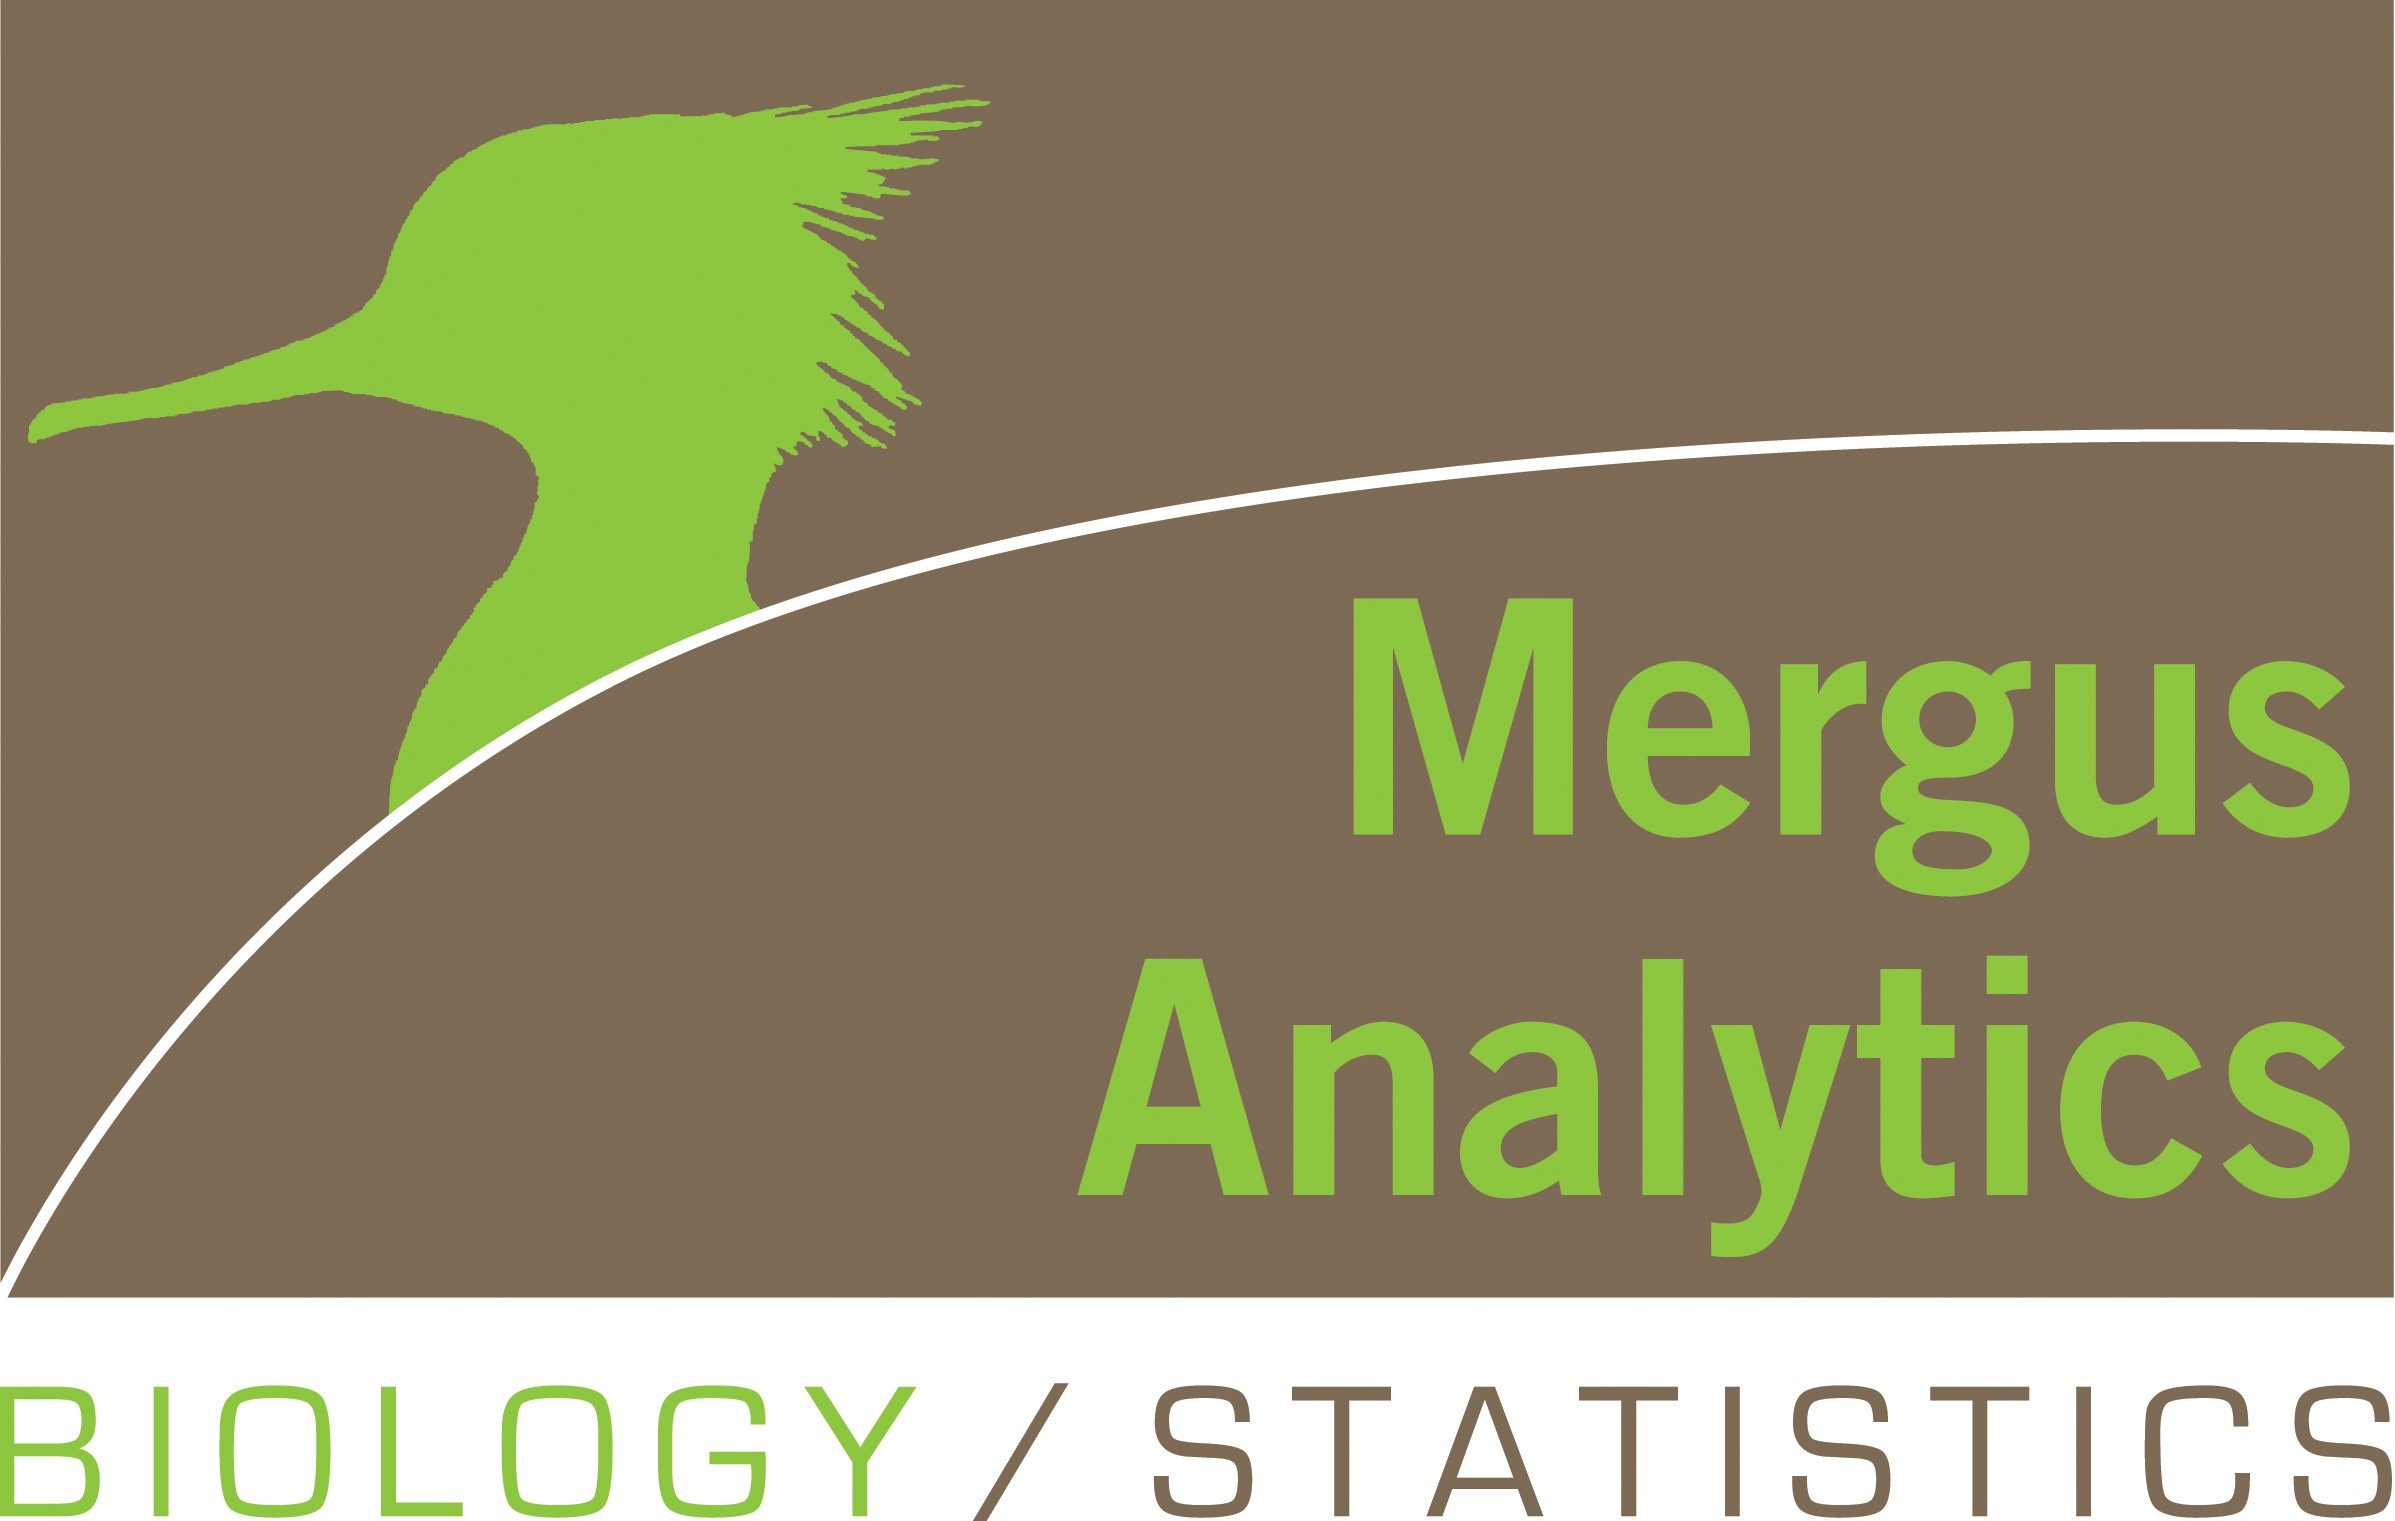 Mergus Analytics, LLC